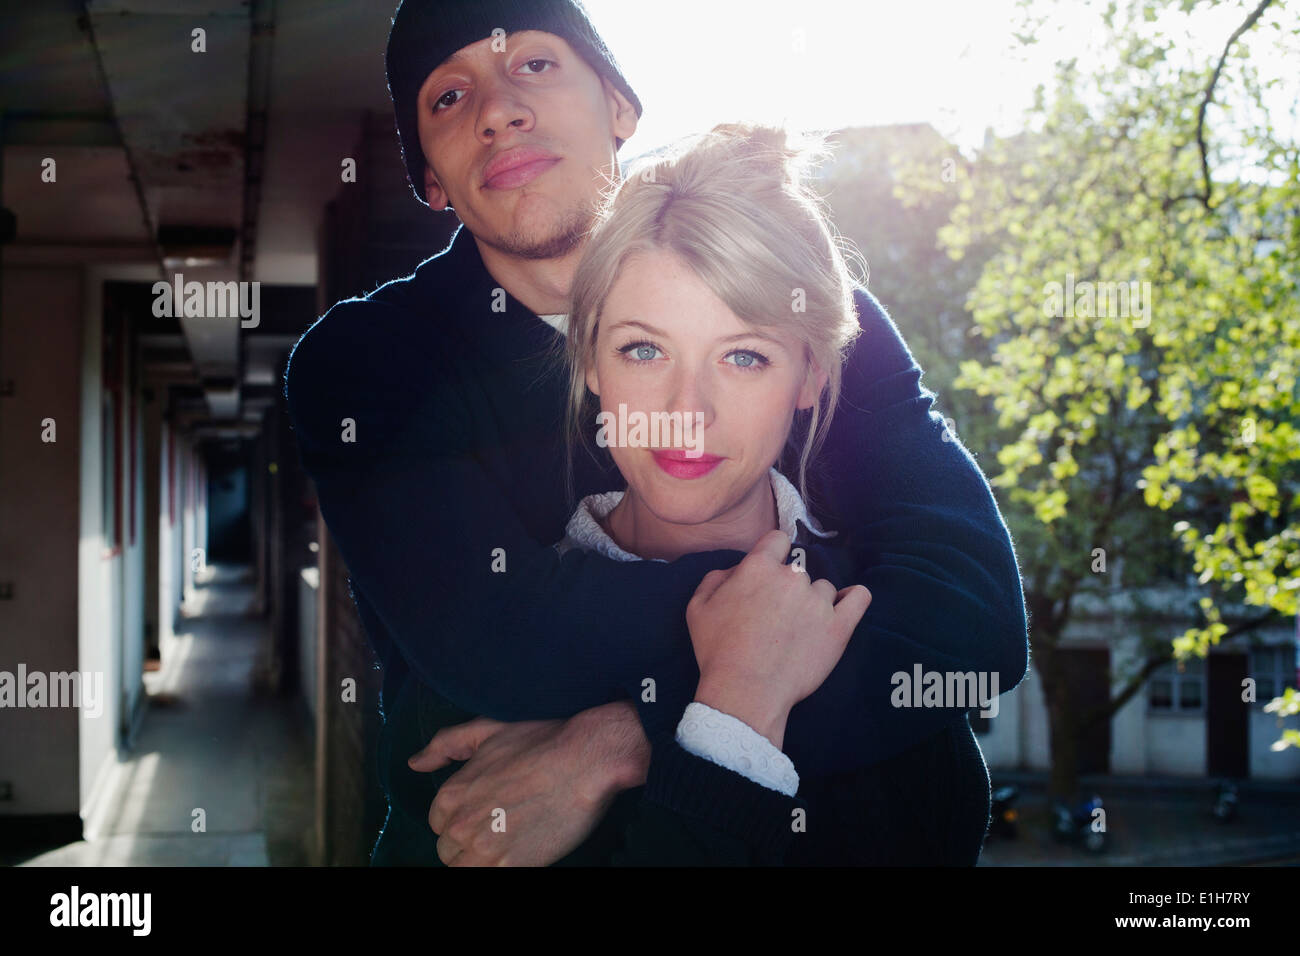 Young couple with arm around, standing in block of flats, London, UK - Stock Image